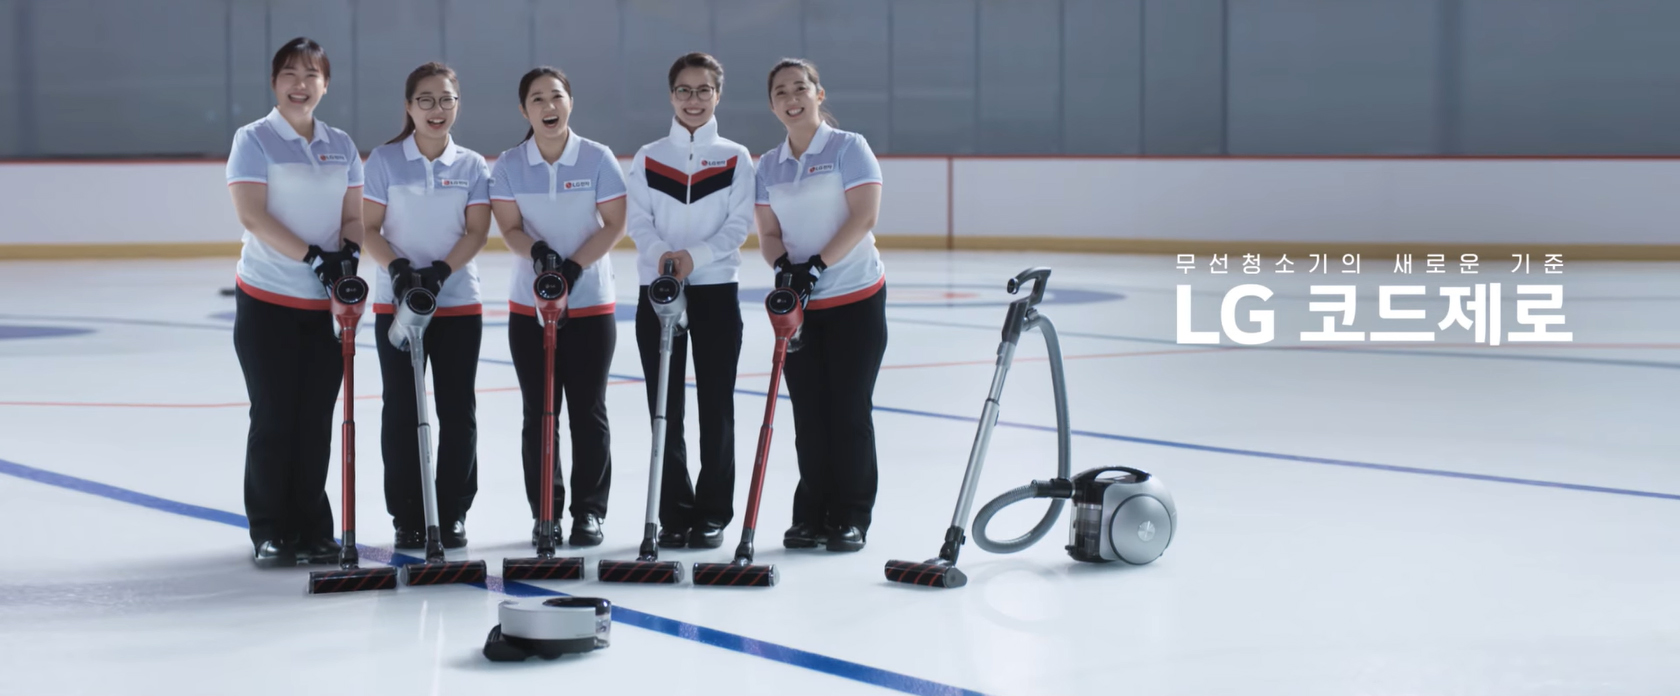 team kim, korea curling team, garlic girls